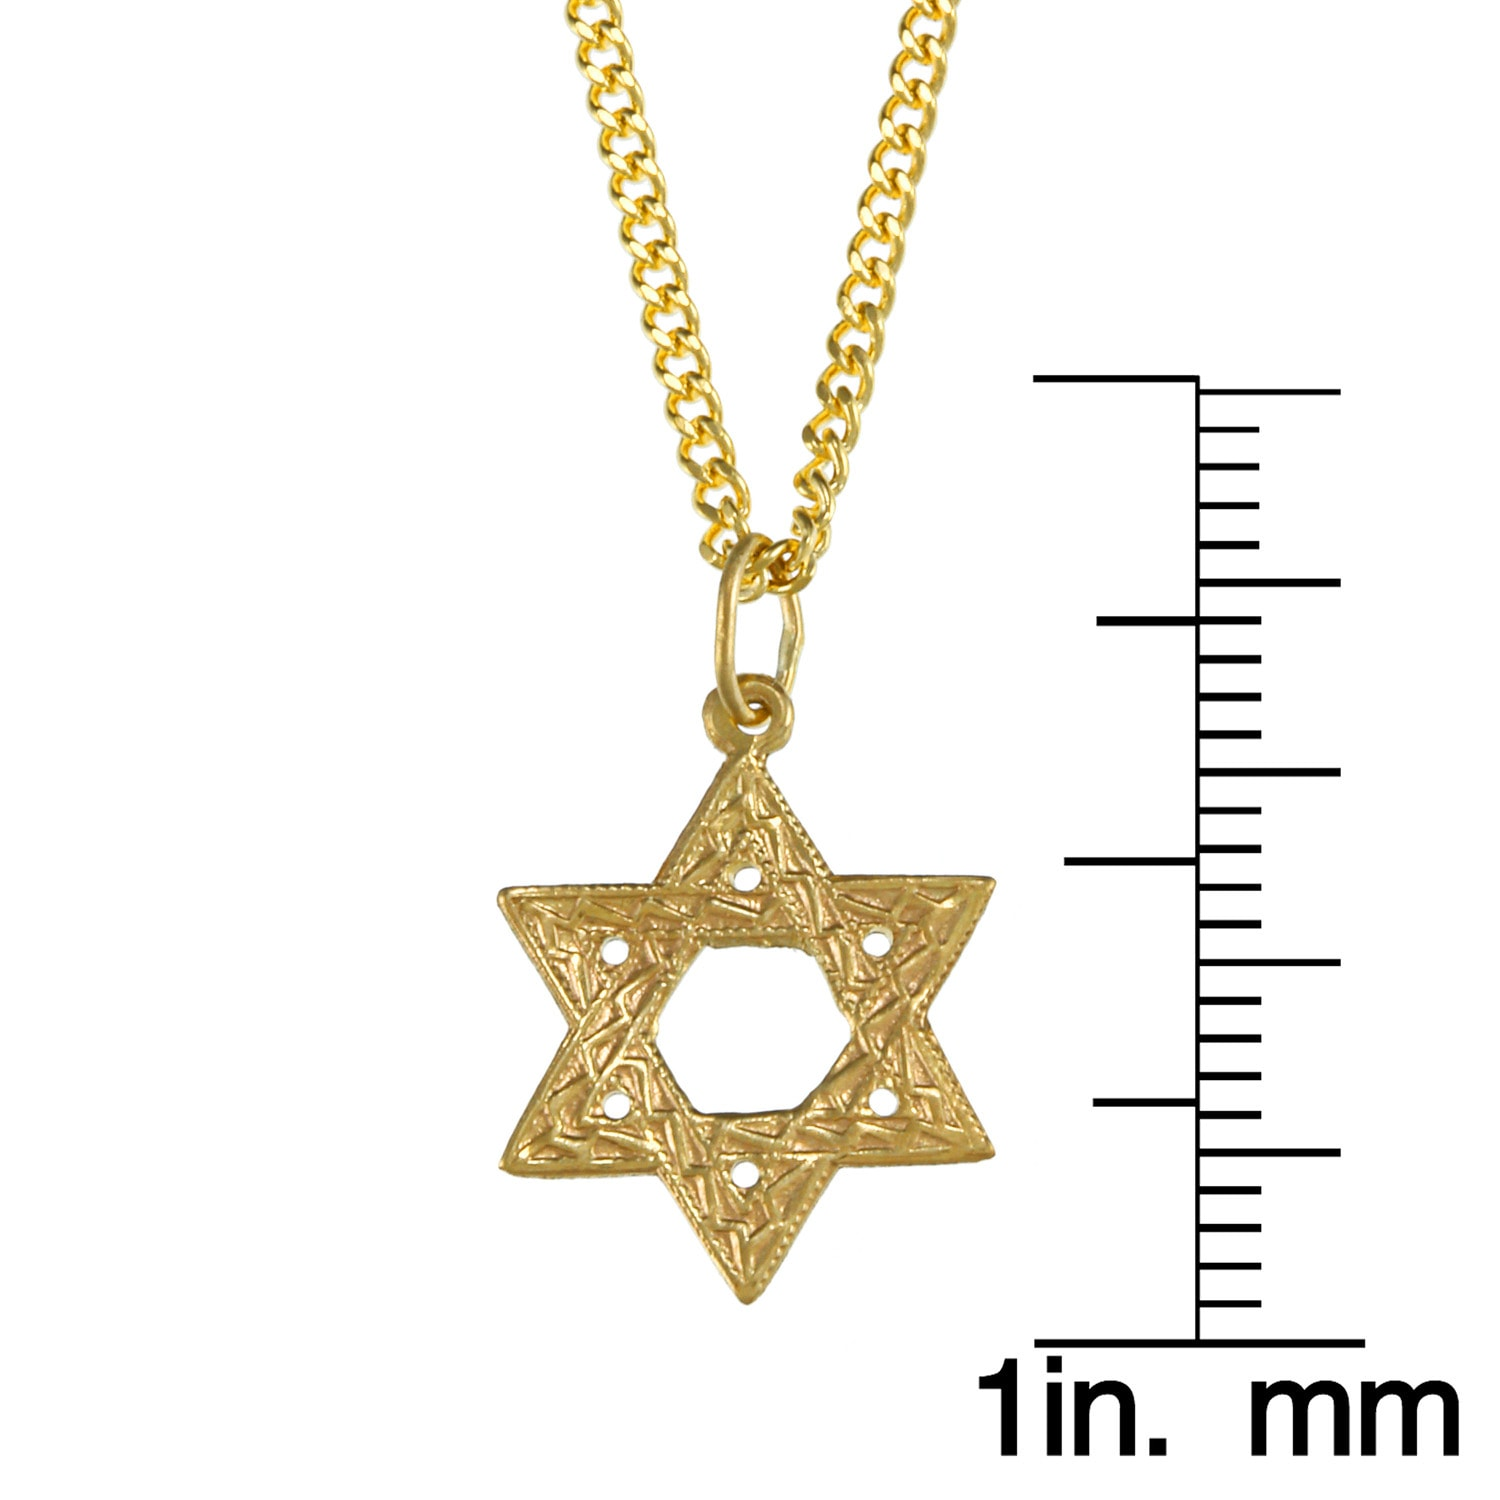 of gold star watches yellow david necklace jewelry designer overstock free product today shipping